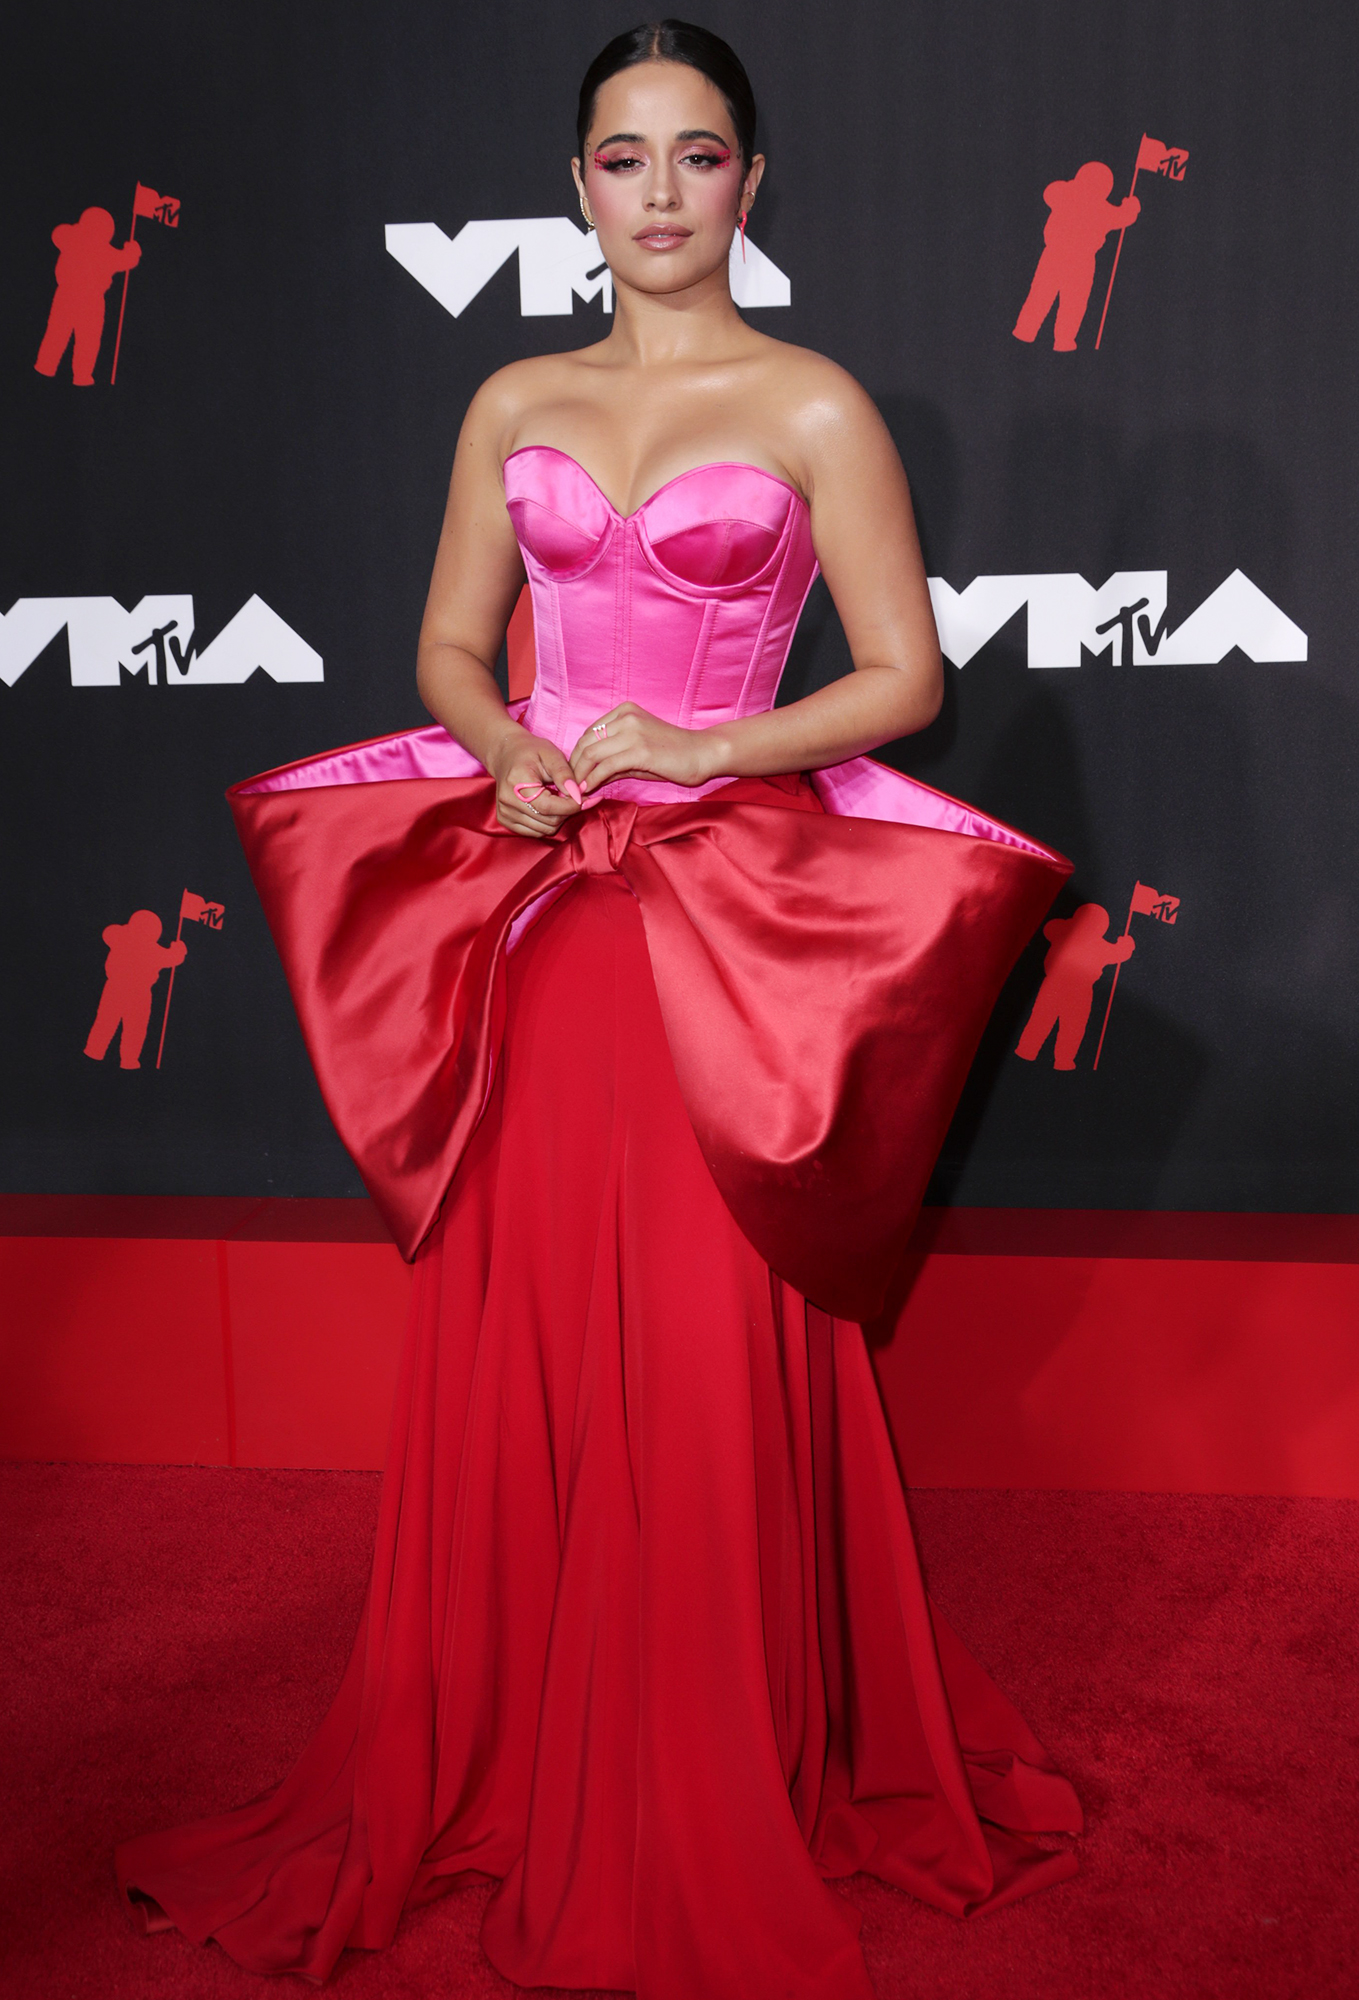 Camila Cabello arrives at the 2021 MTV Video Music Awards